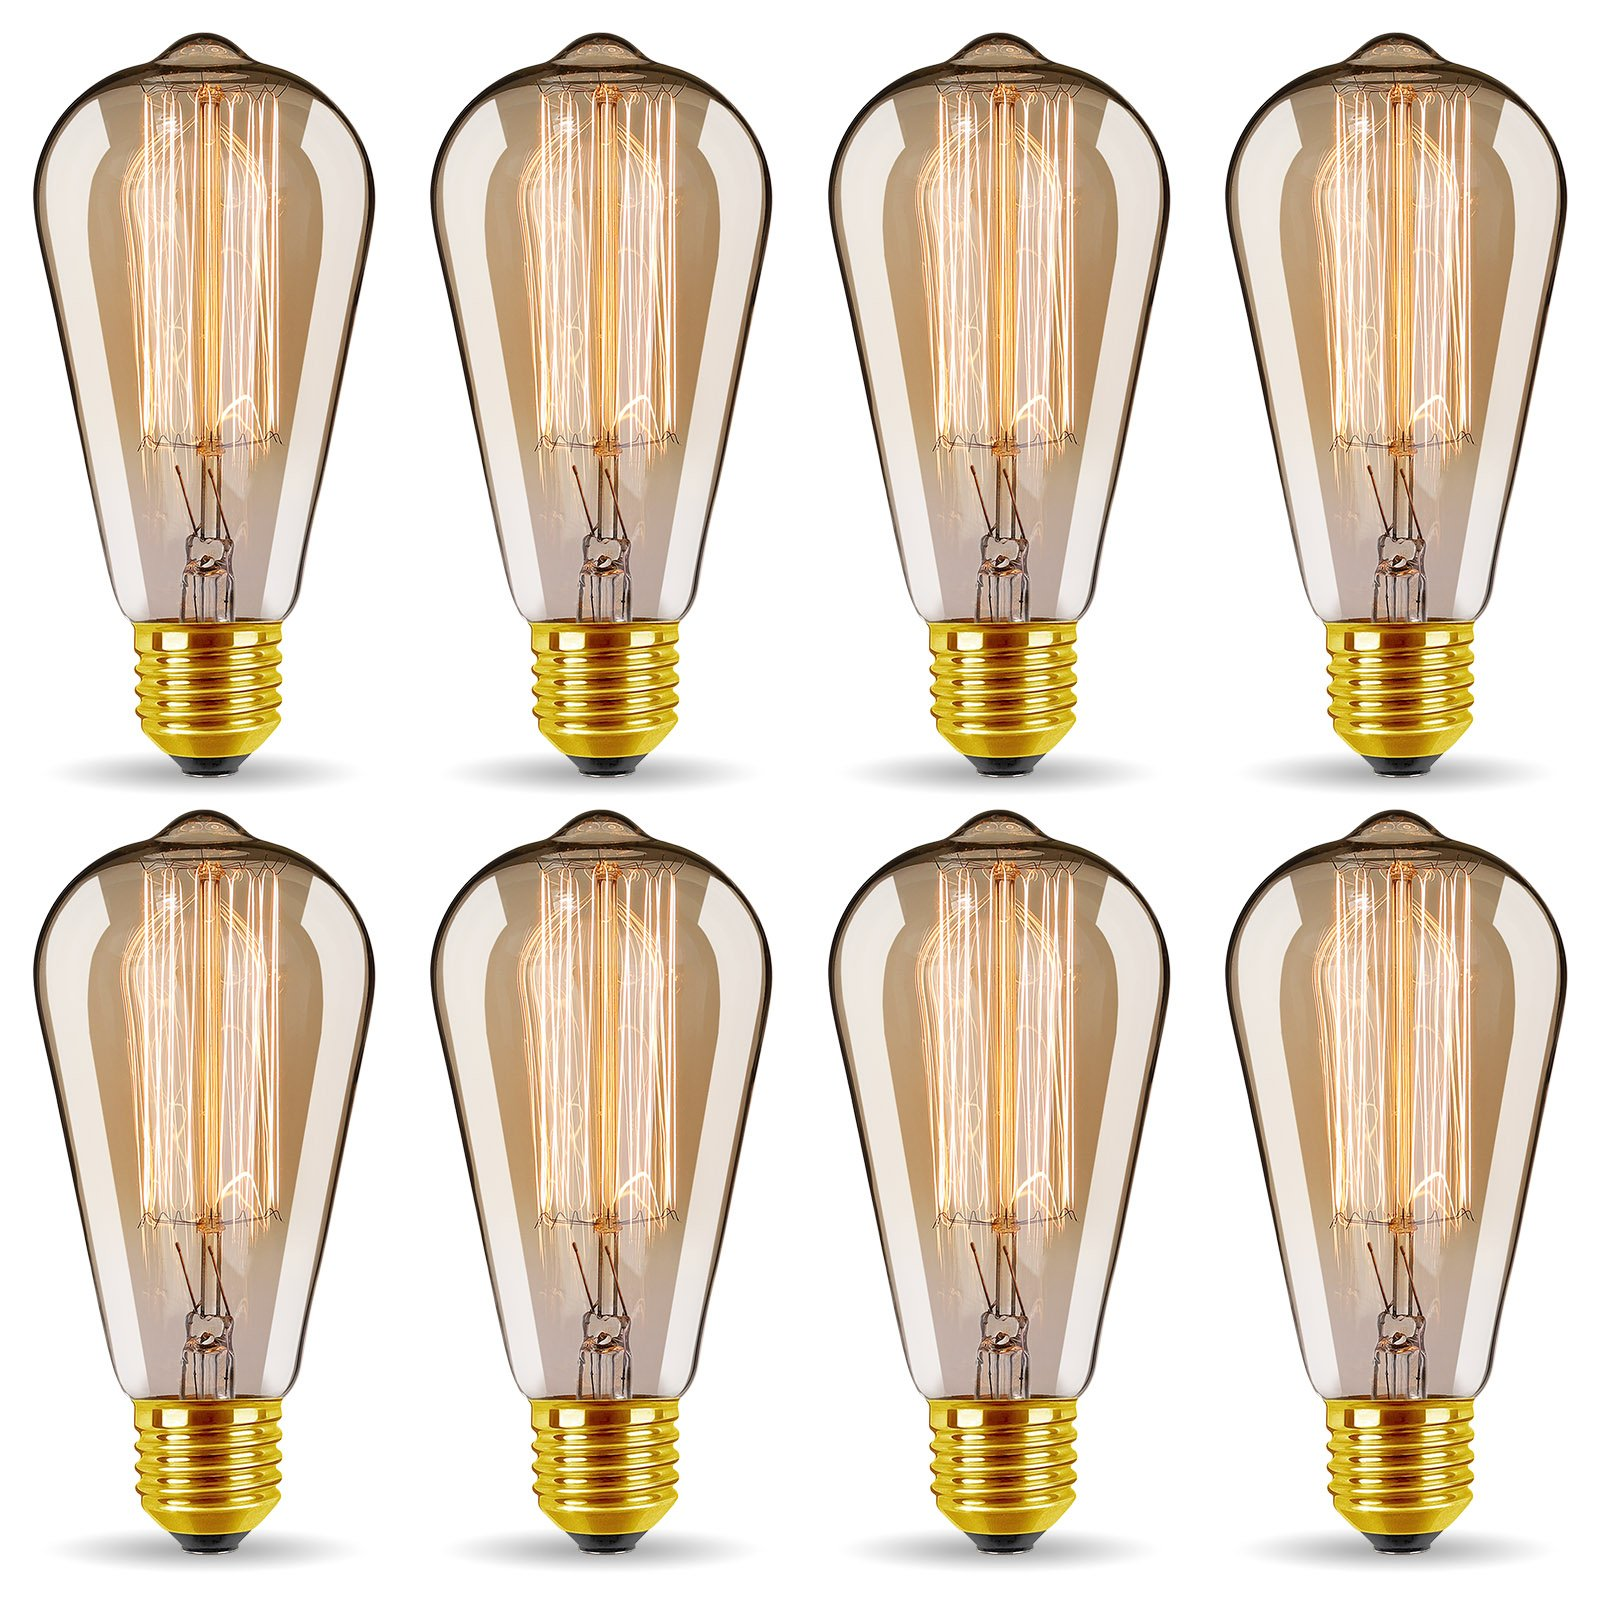 ST64 Vintage Edison Light Bulbs Dimmable 60W/110V E26/E27 Base Replacement Bulbs for Wall Sconces Lights, Pendant Light, Amber Warm & Squirrel Cage Filament Antique Light Bulb for Home Decor (8 Pack)